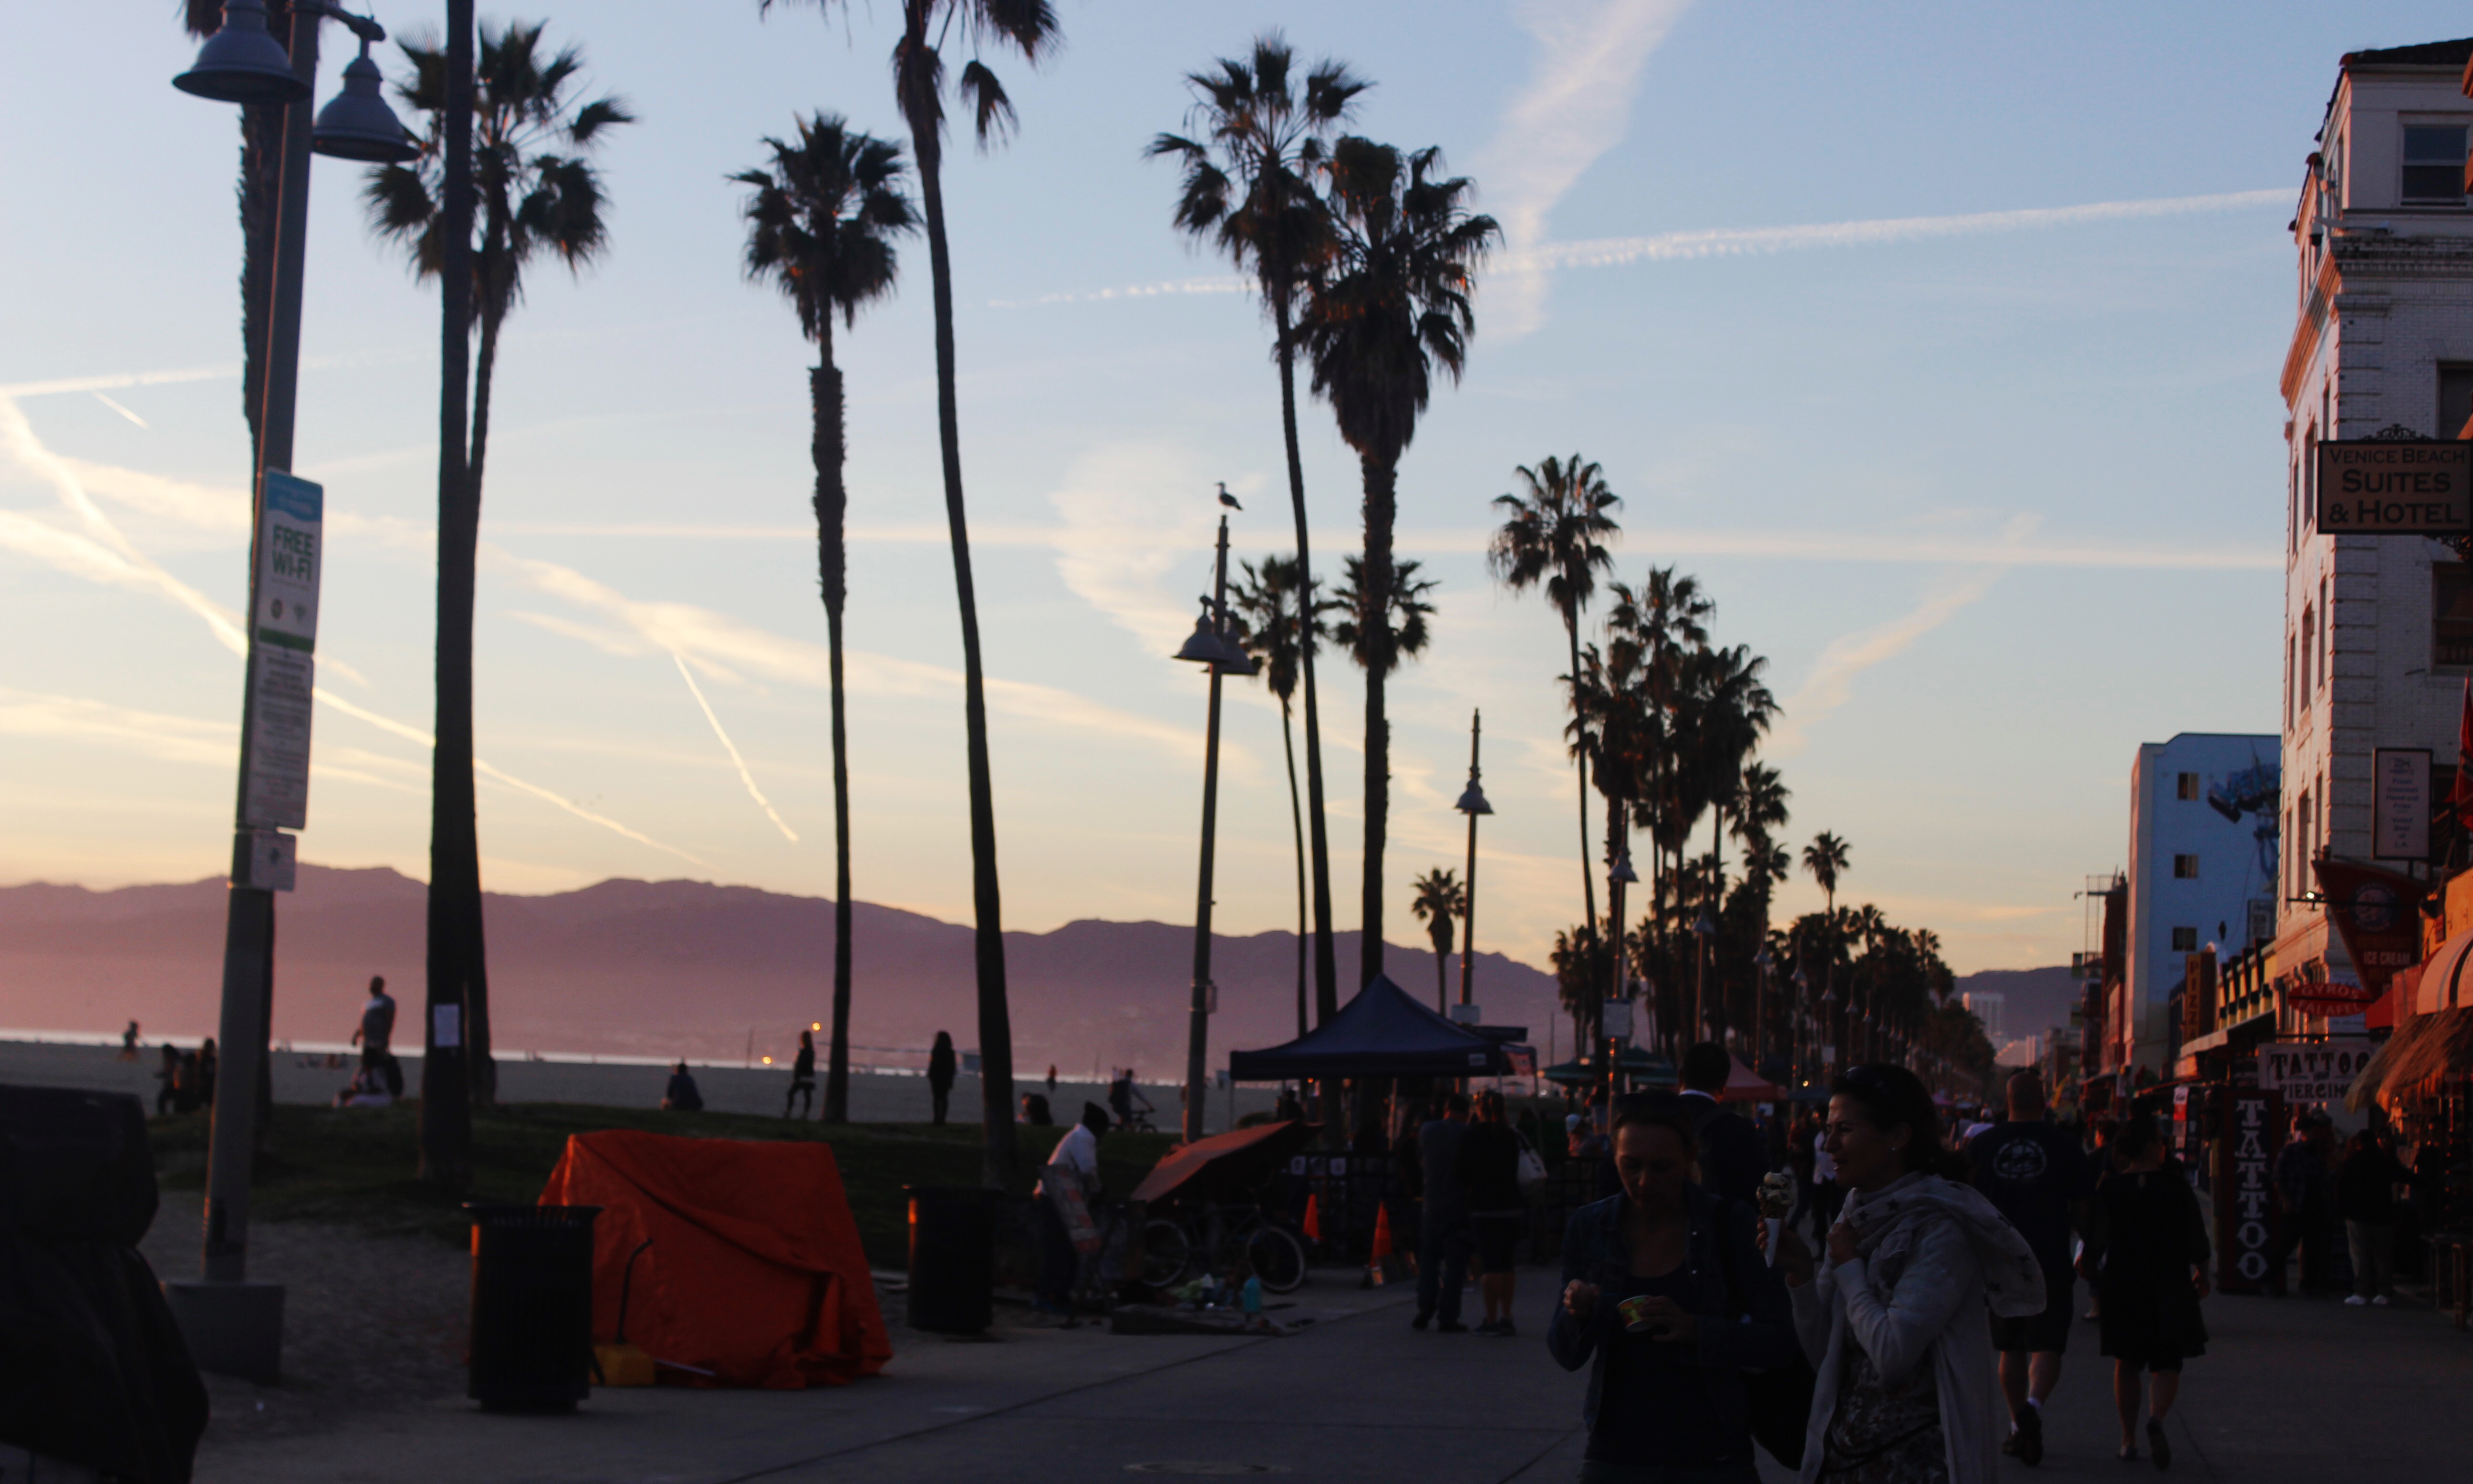 venice beach at sunset